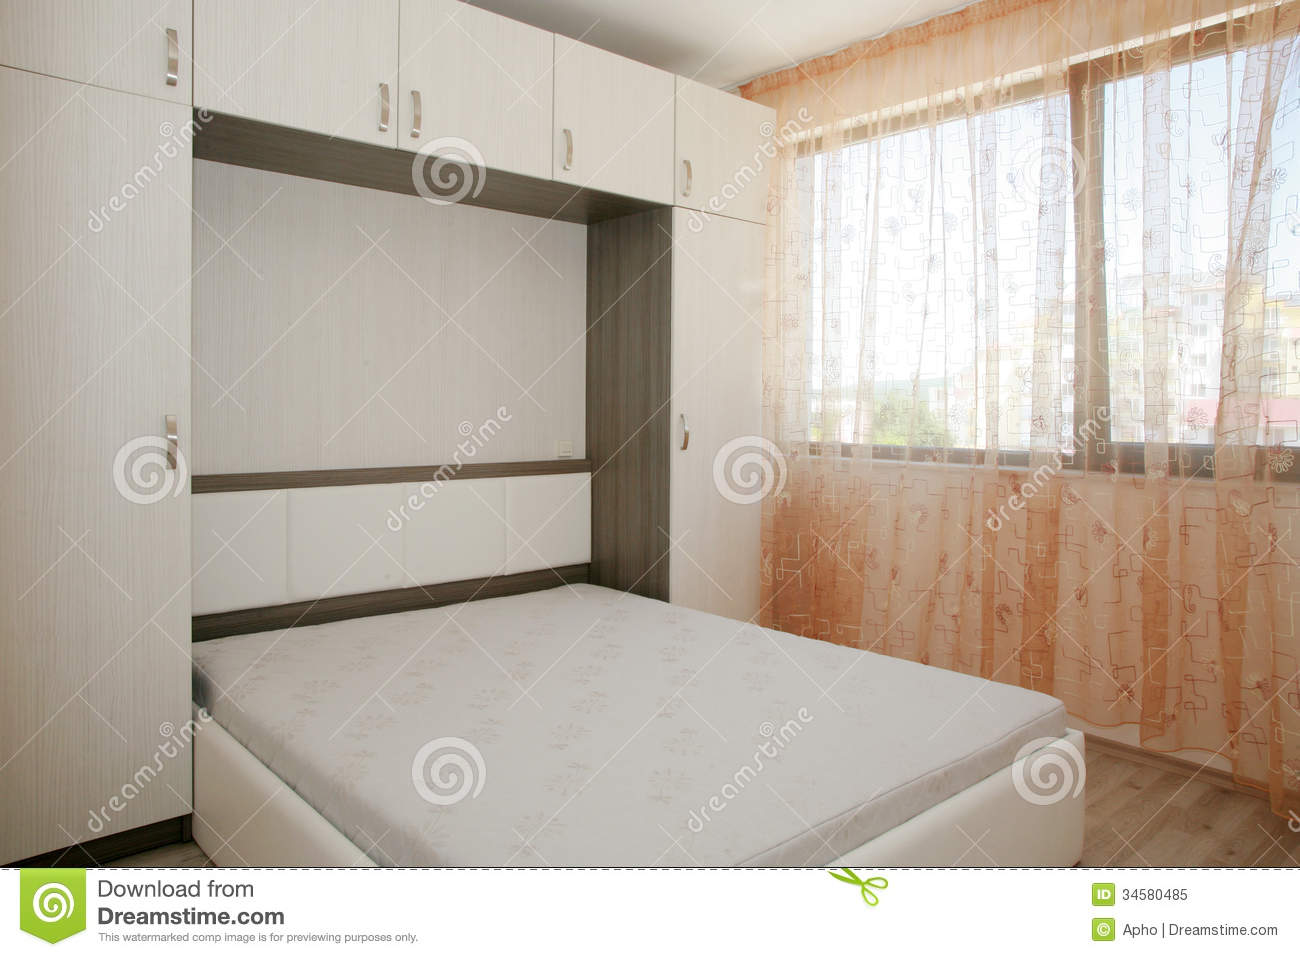 Small bedroom with wardrobe all blog custom - Design for small spaces bedroom model ...